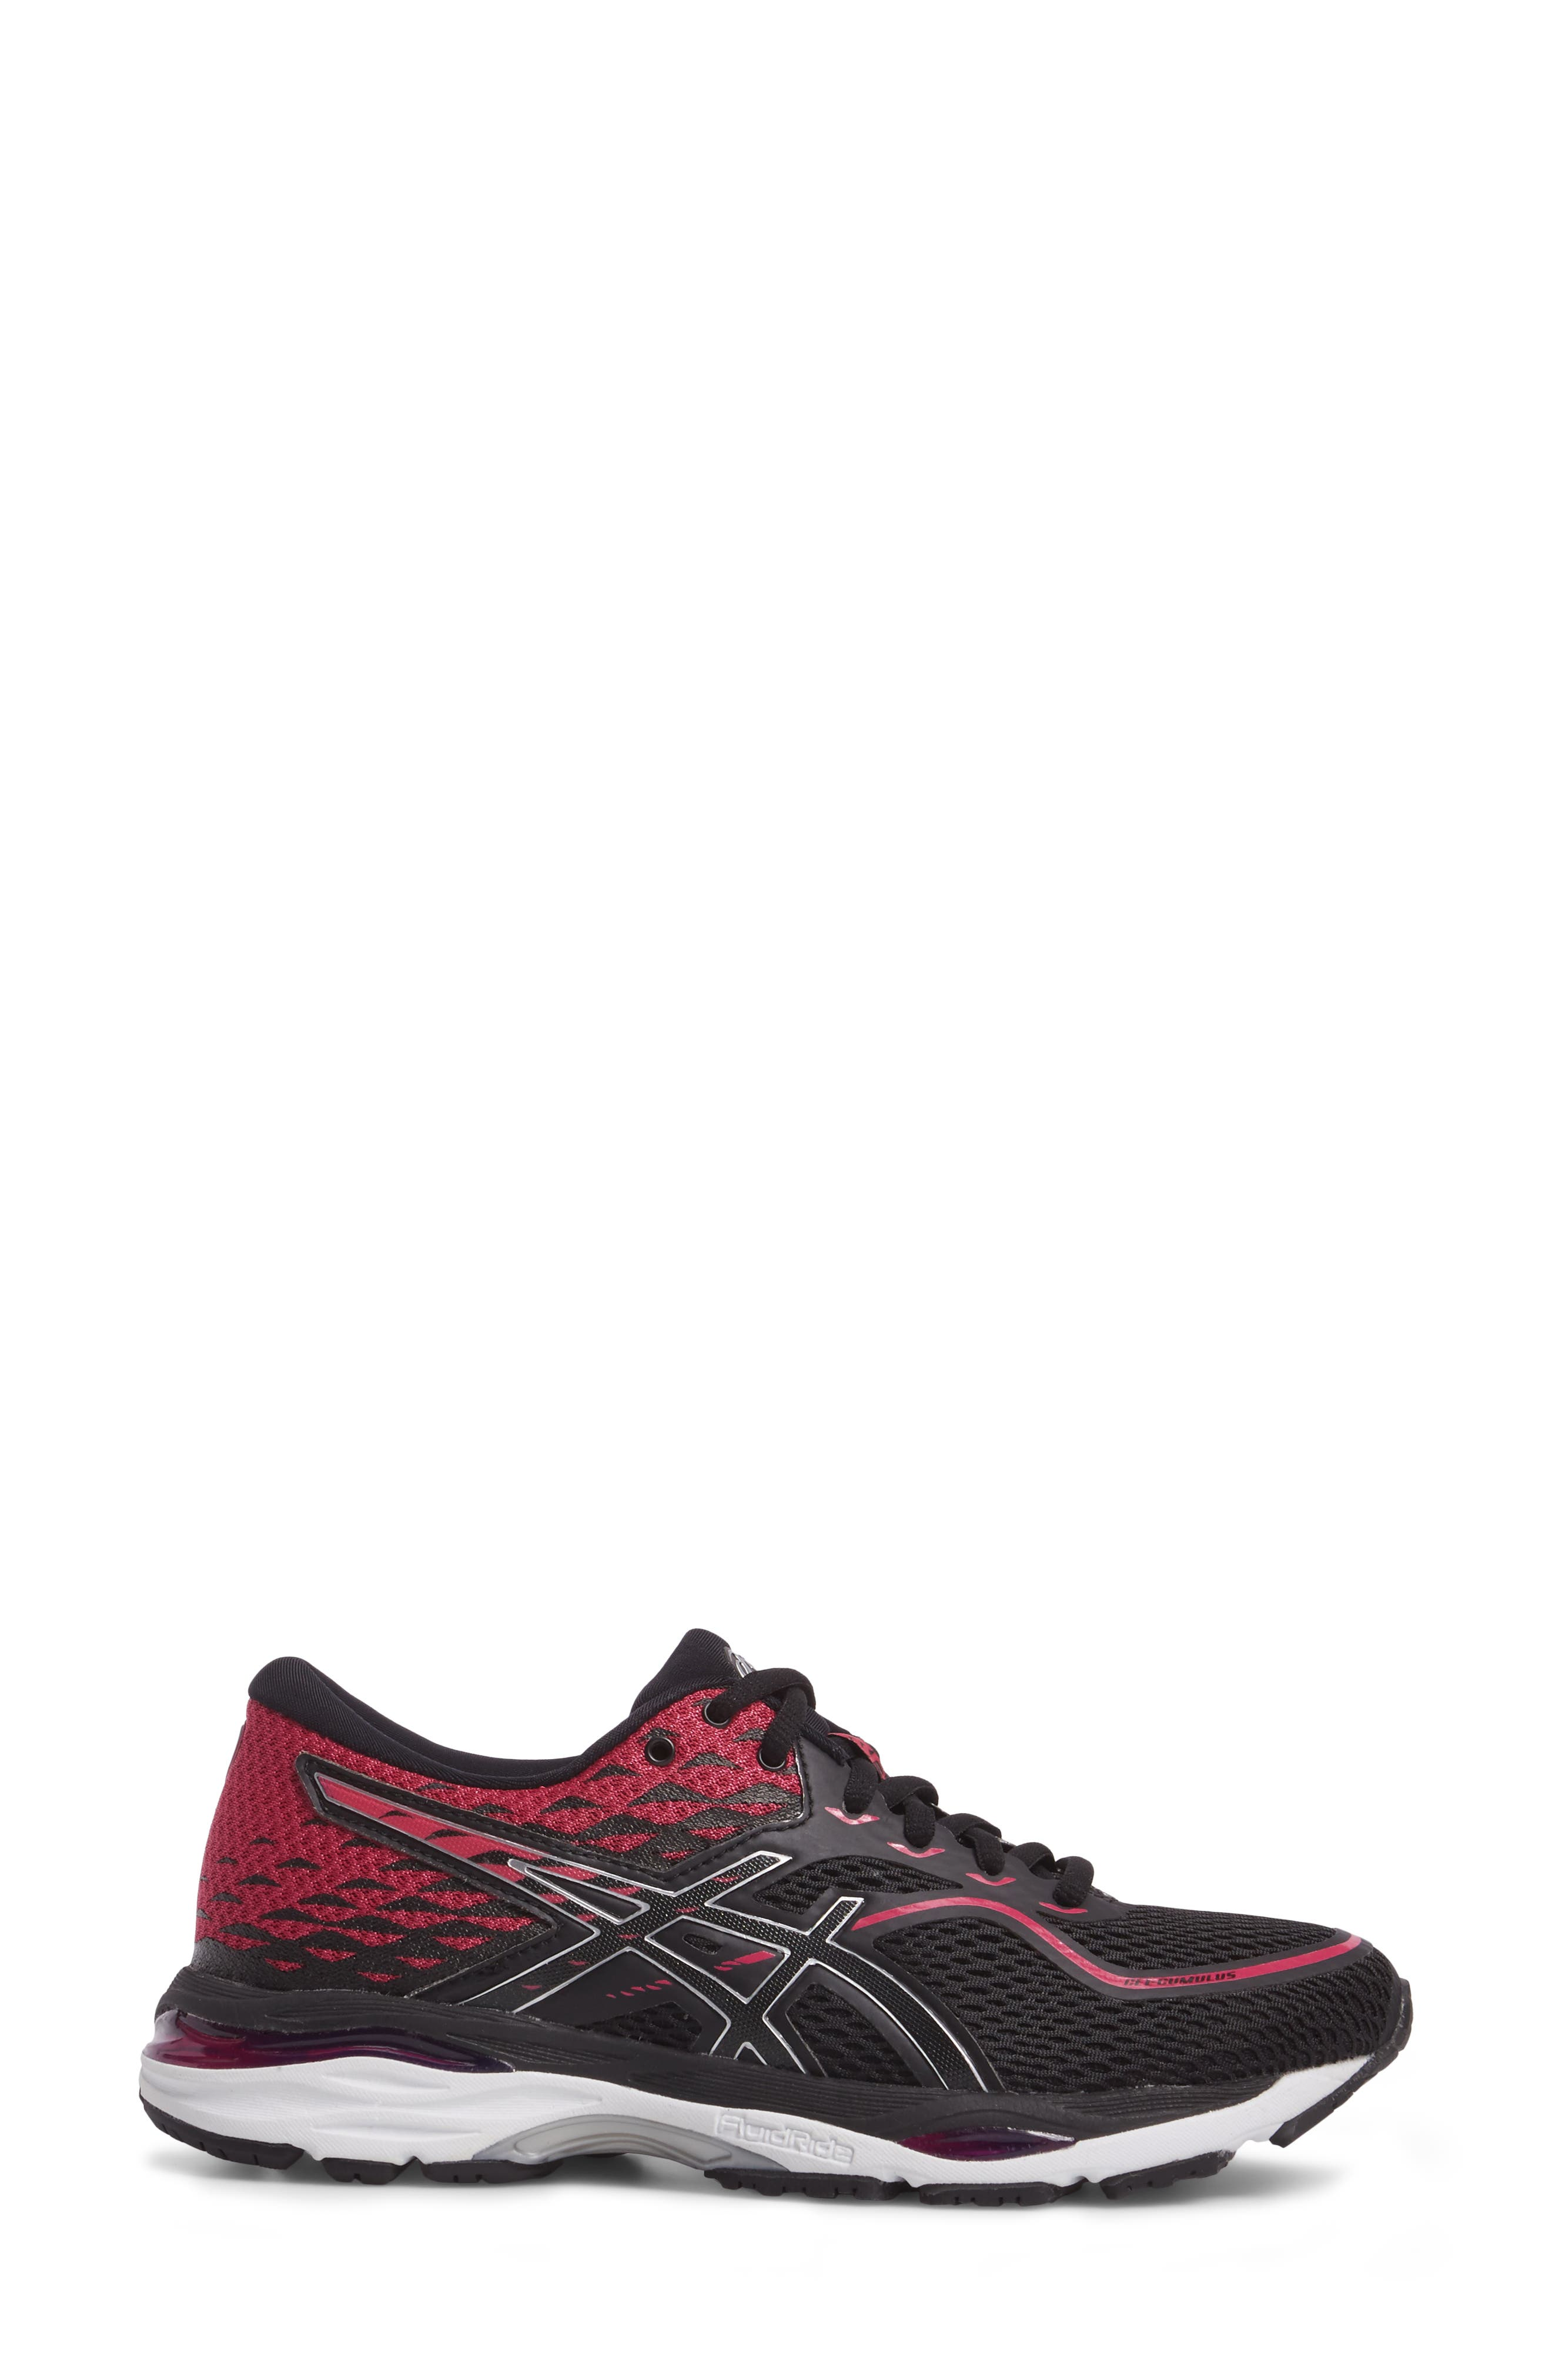 Gel Cumulus 19 2A Running Shoe,                             Alternate thumbnail 3, color,                             Black/ Silver/ Pink Peacock